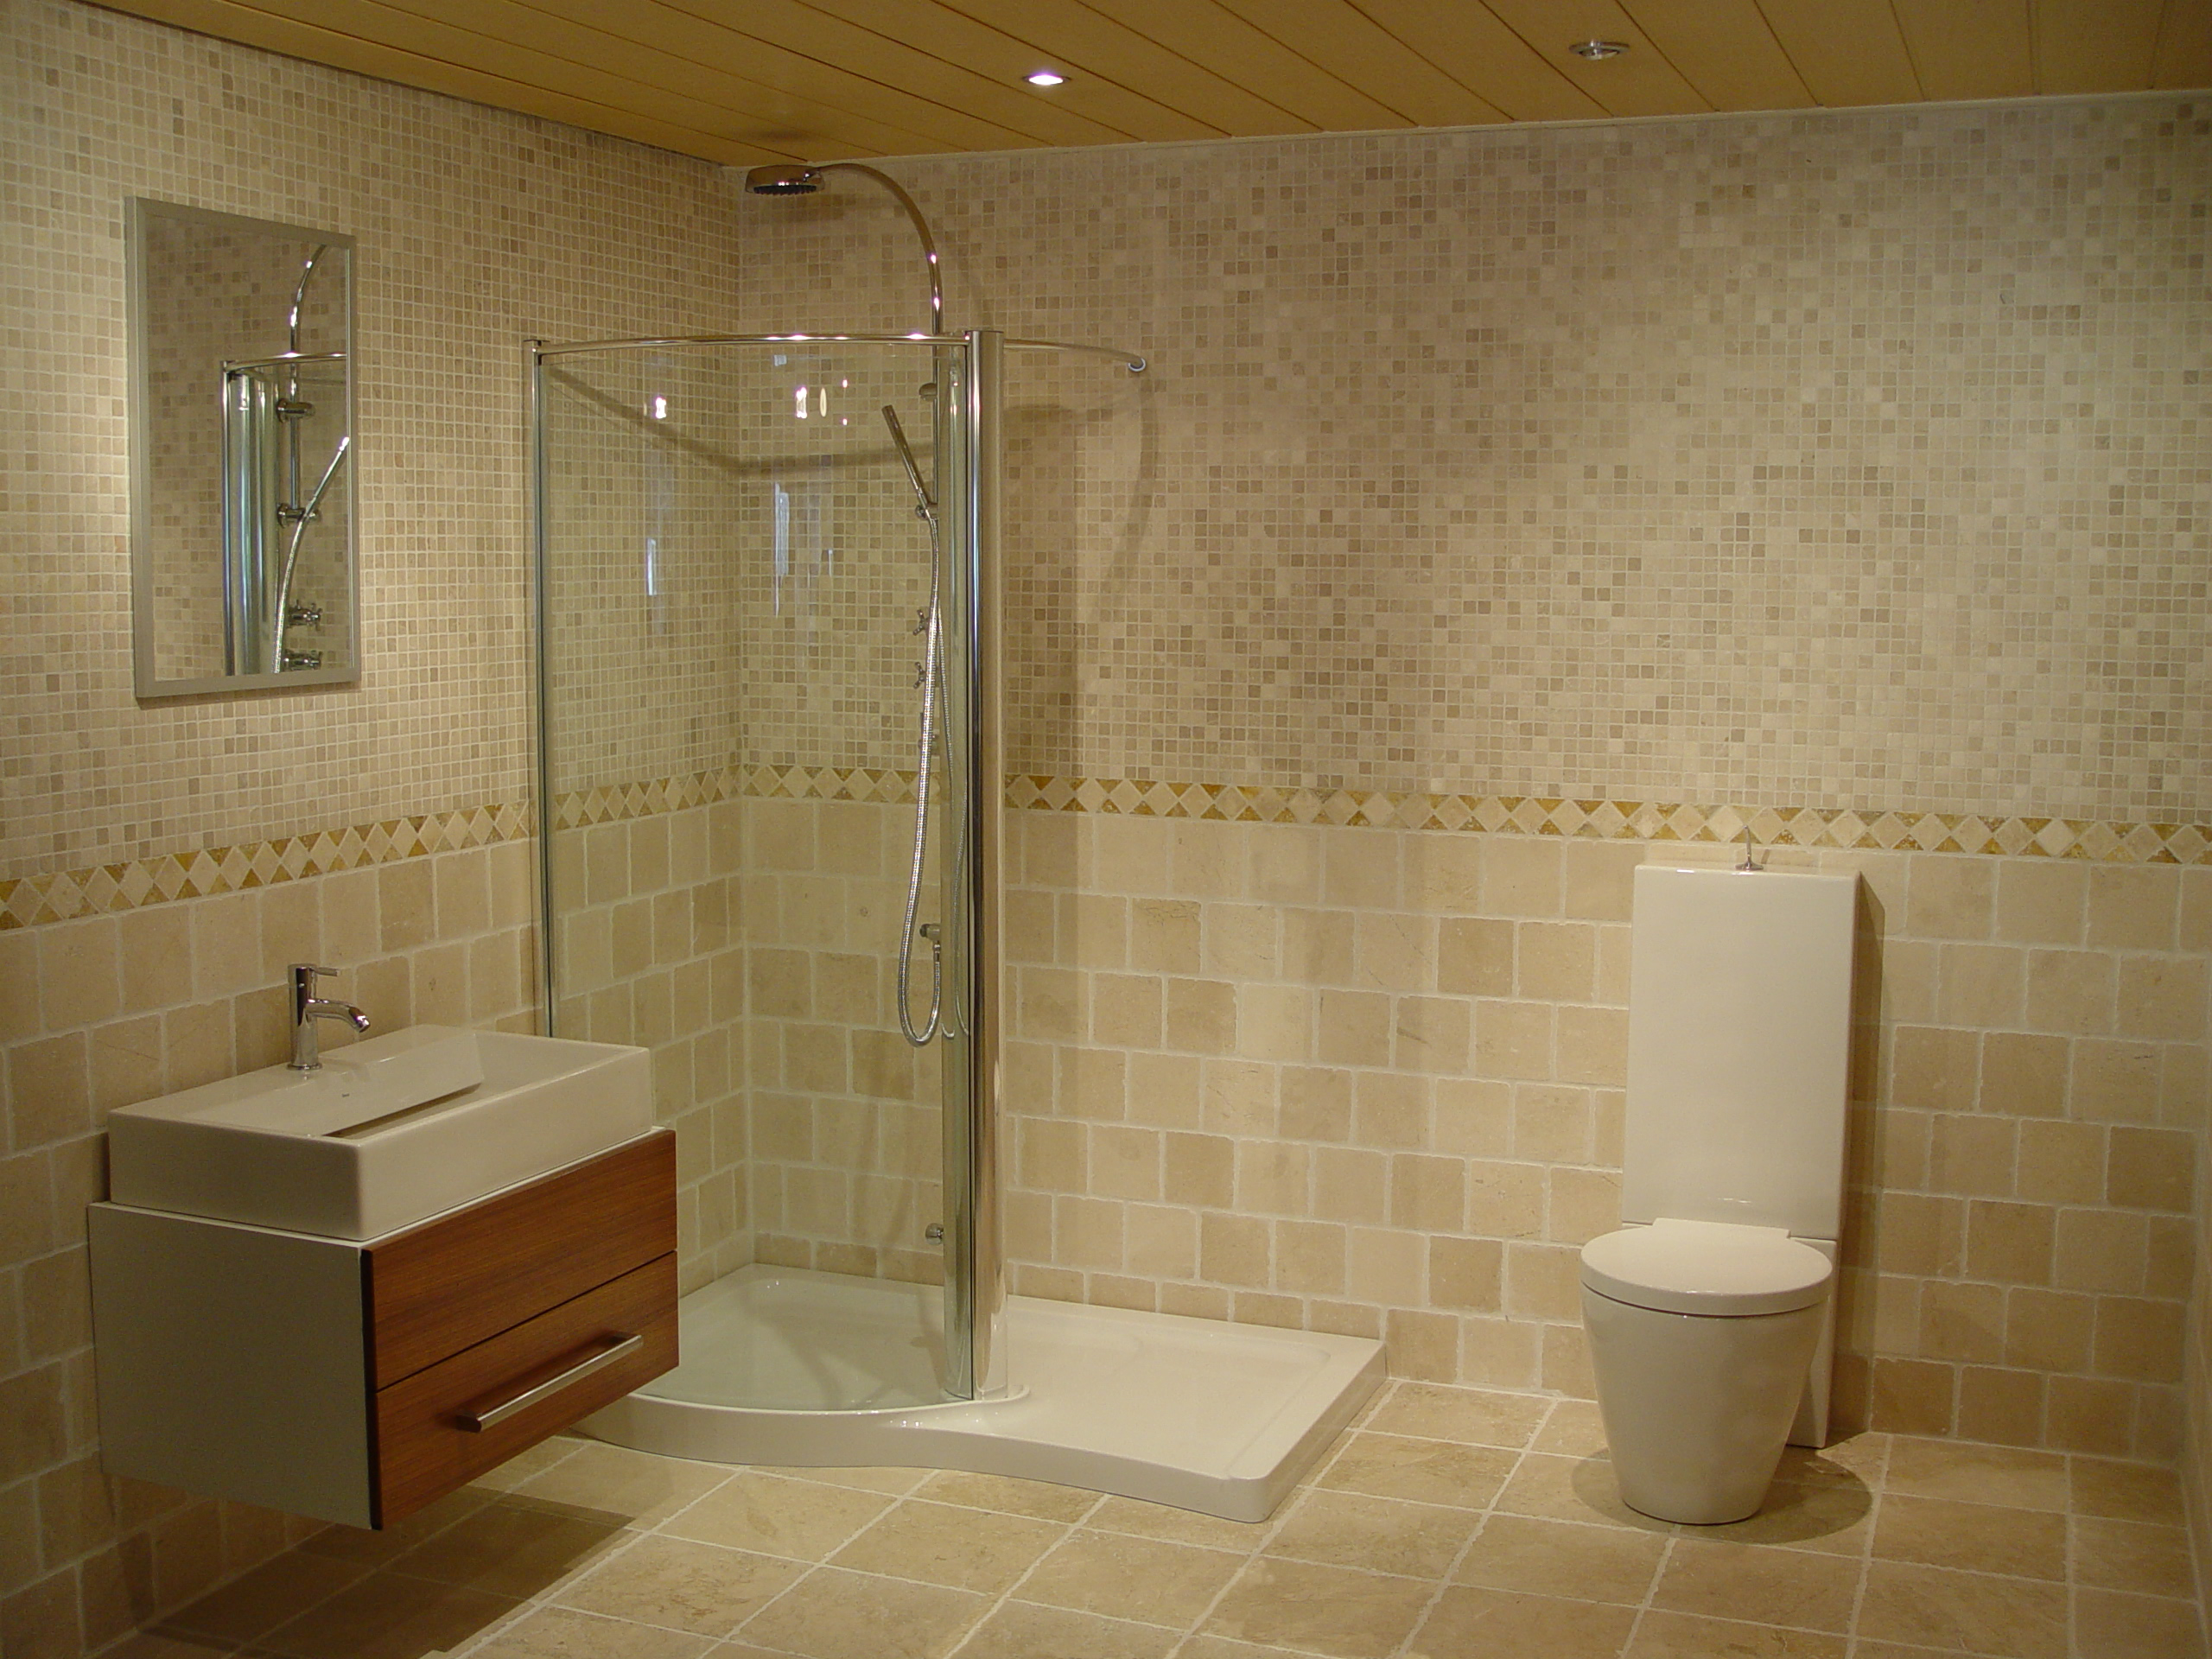 Superior Bathroom Tile Design Ideas ... Design Inspirations